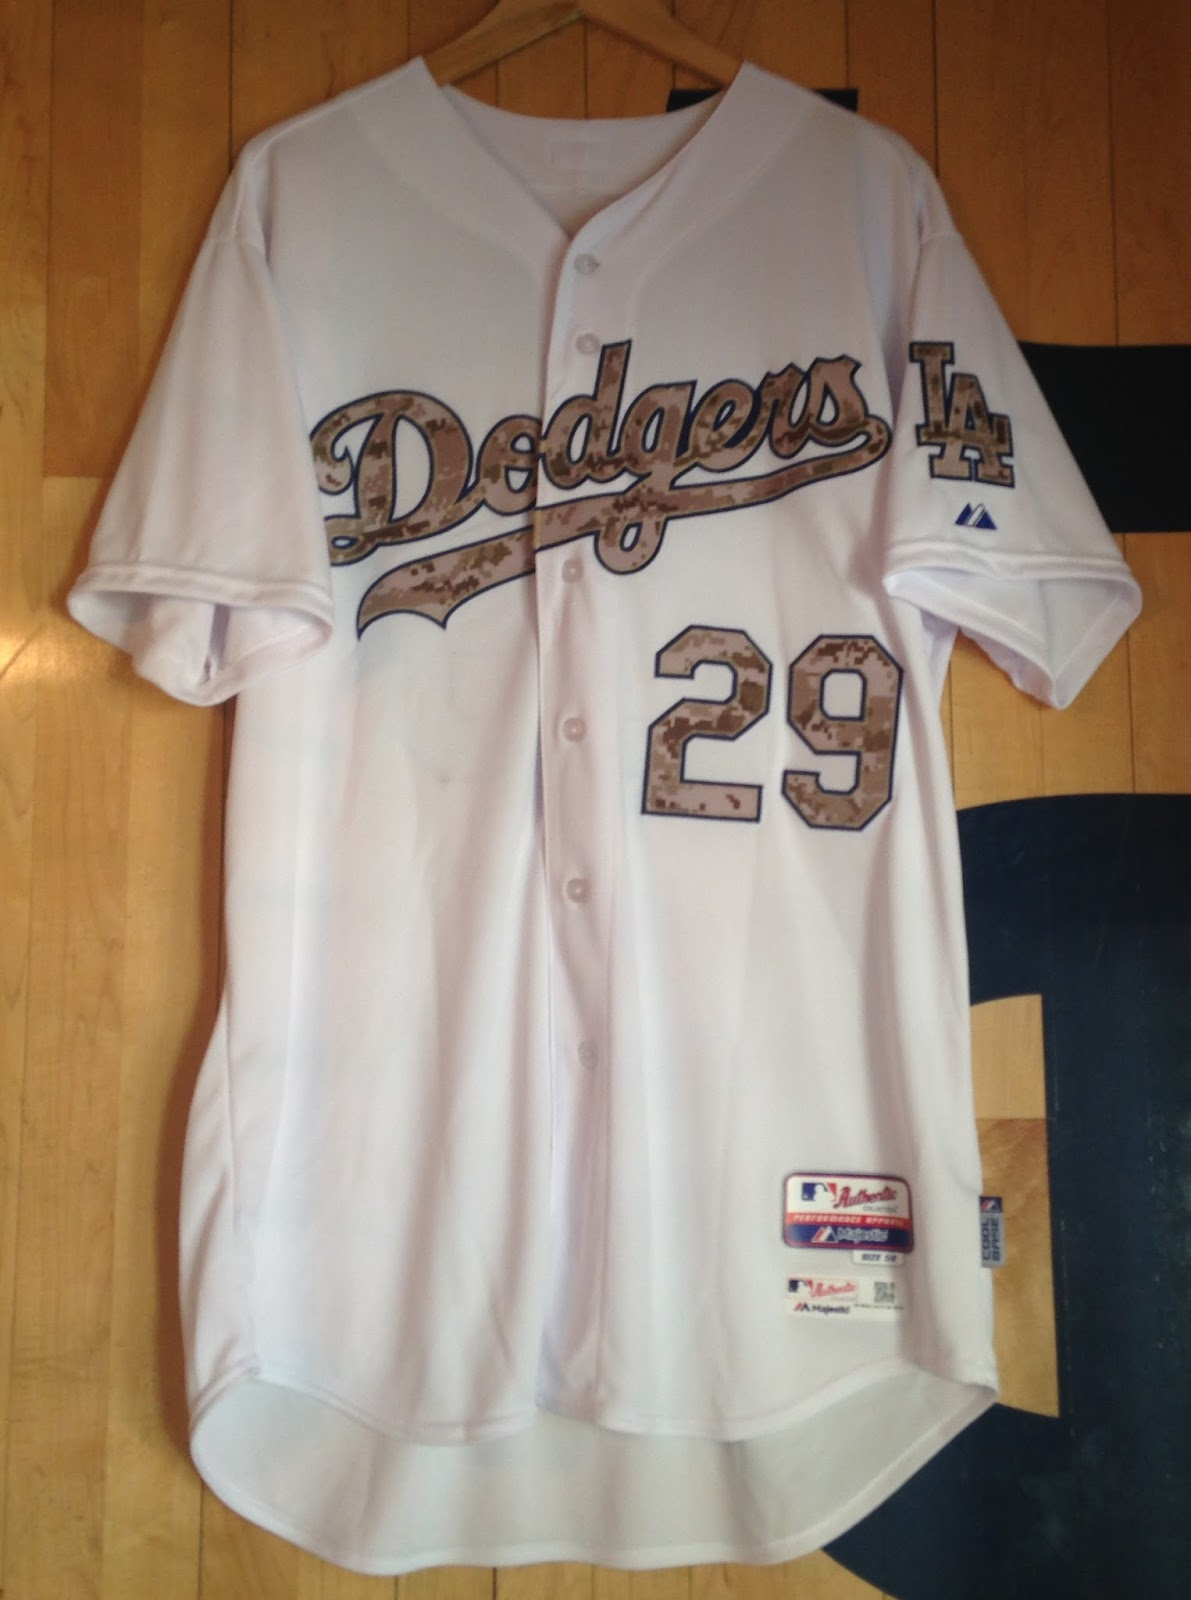 I picked up this jersey from the MLB Auctions site. This is Tim Wallach s